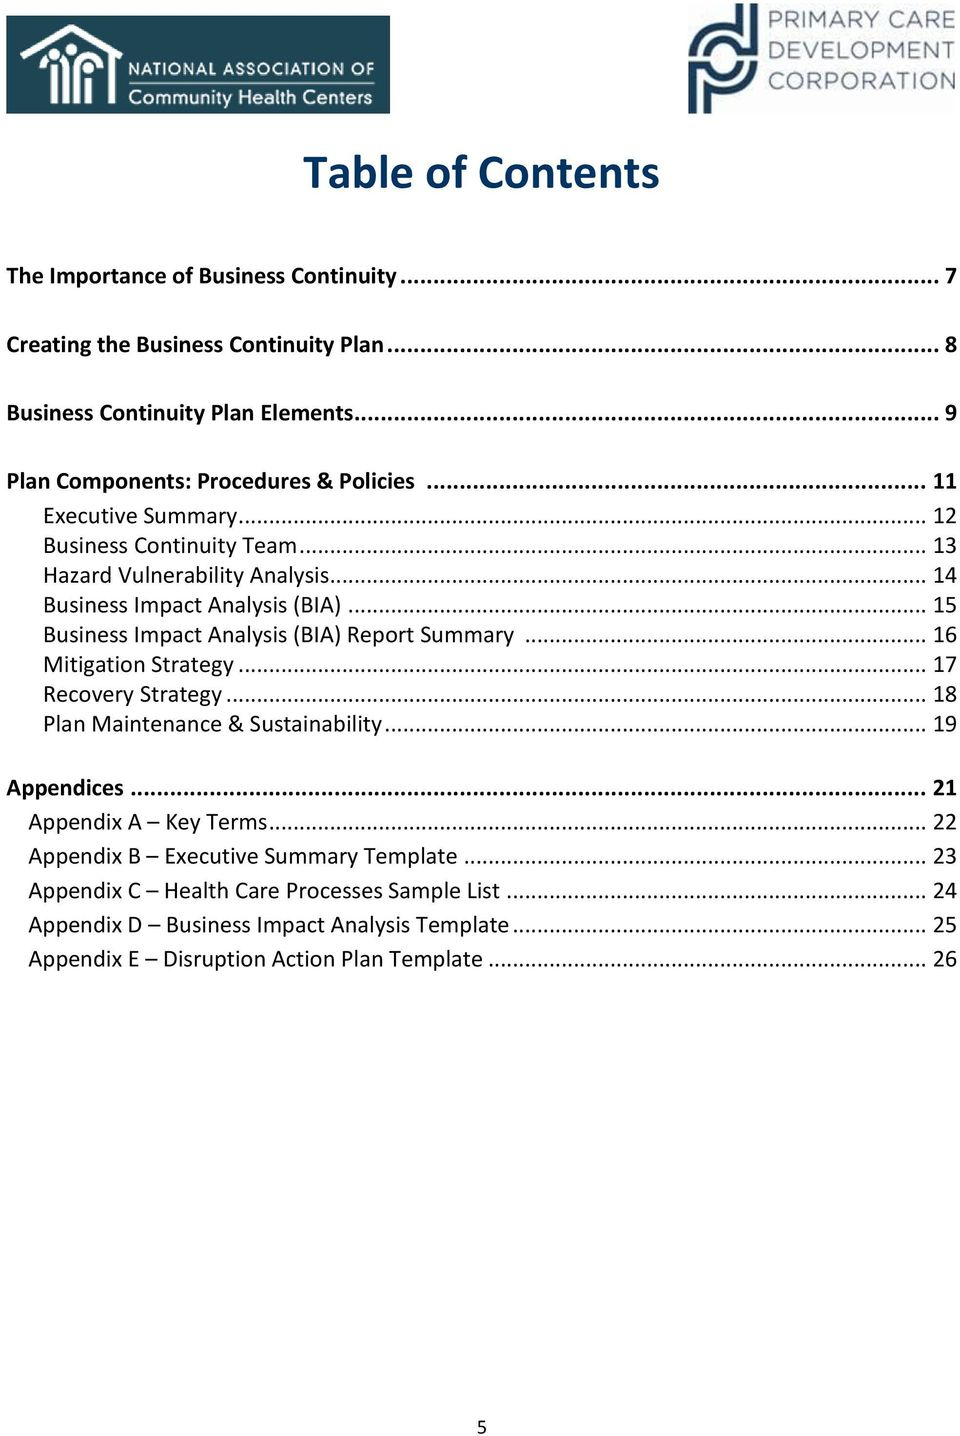 Creating a business continuity plan for your health center pdf 15 business impact analysis bia report summary 16 mitigation wajeb Choice Image